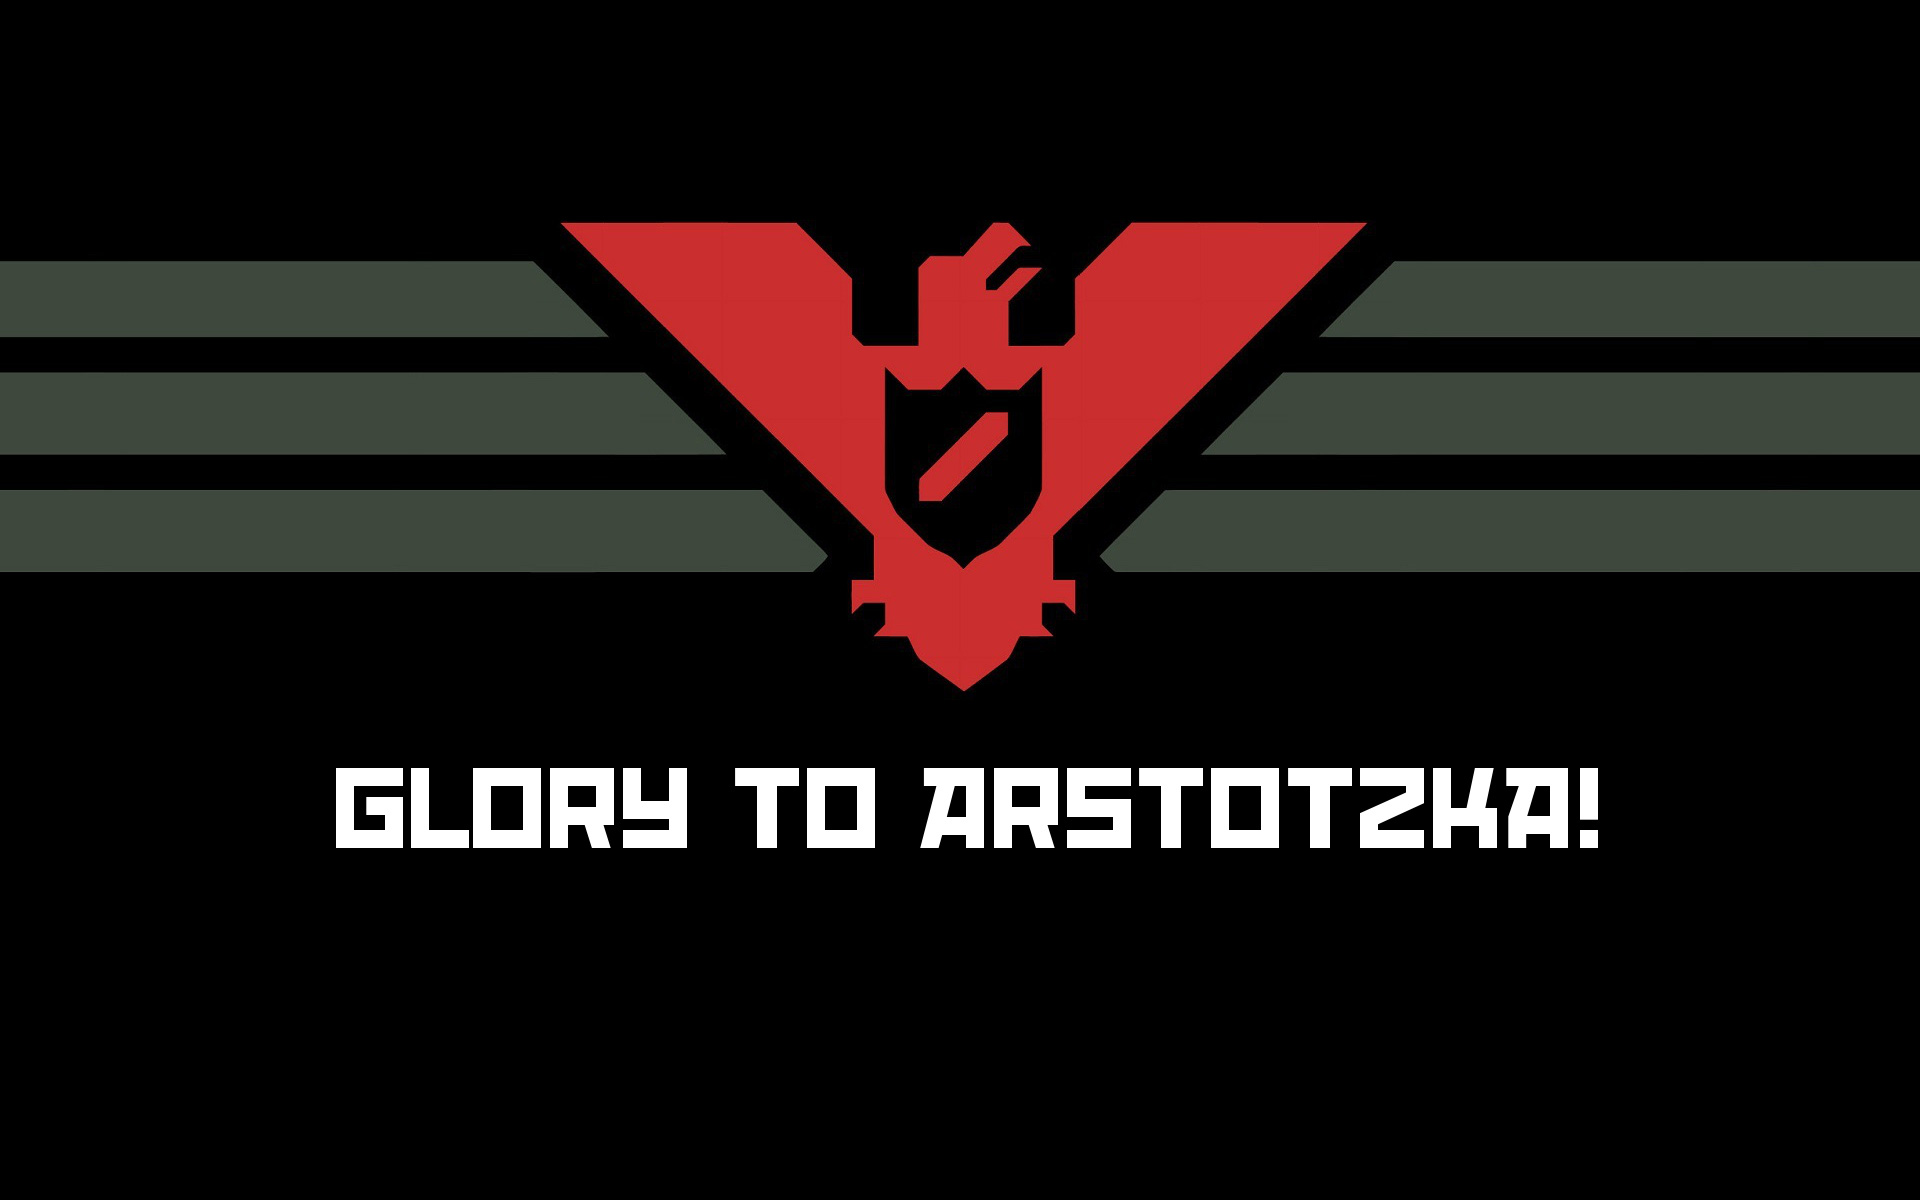 Free Papers, Please Wallpaper in 1920x1200